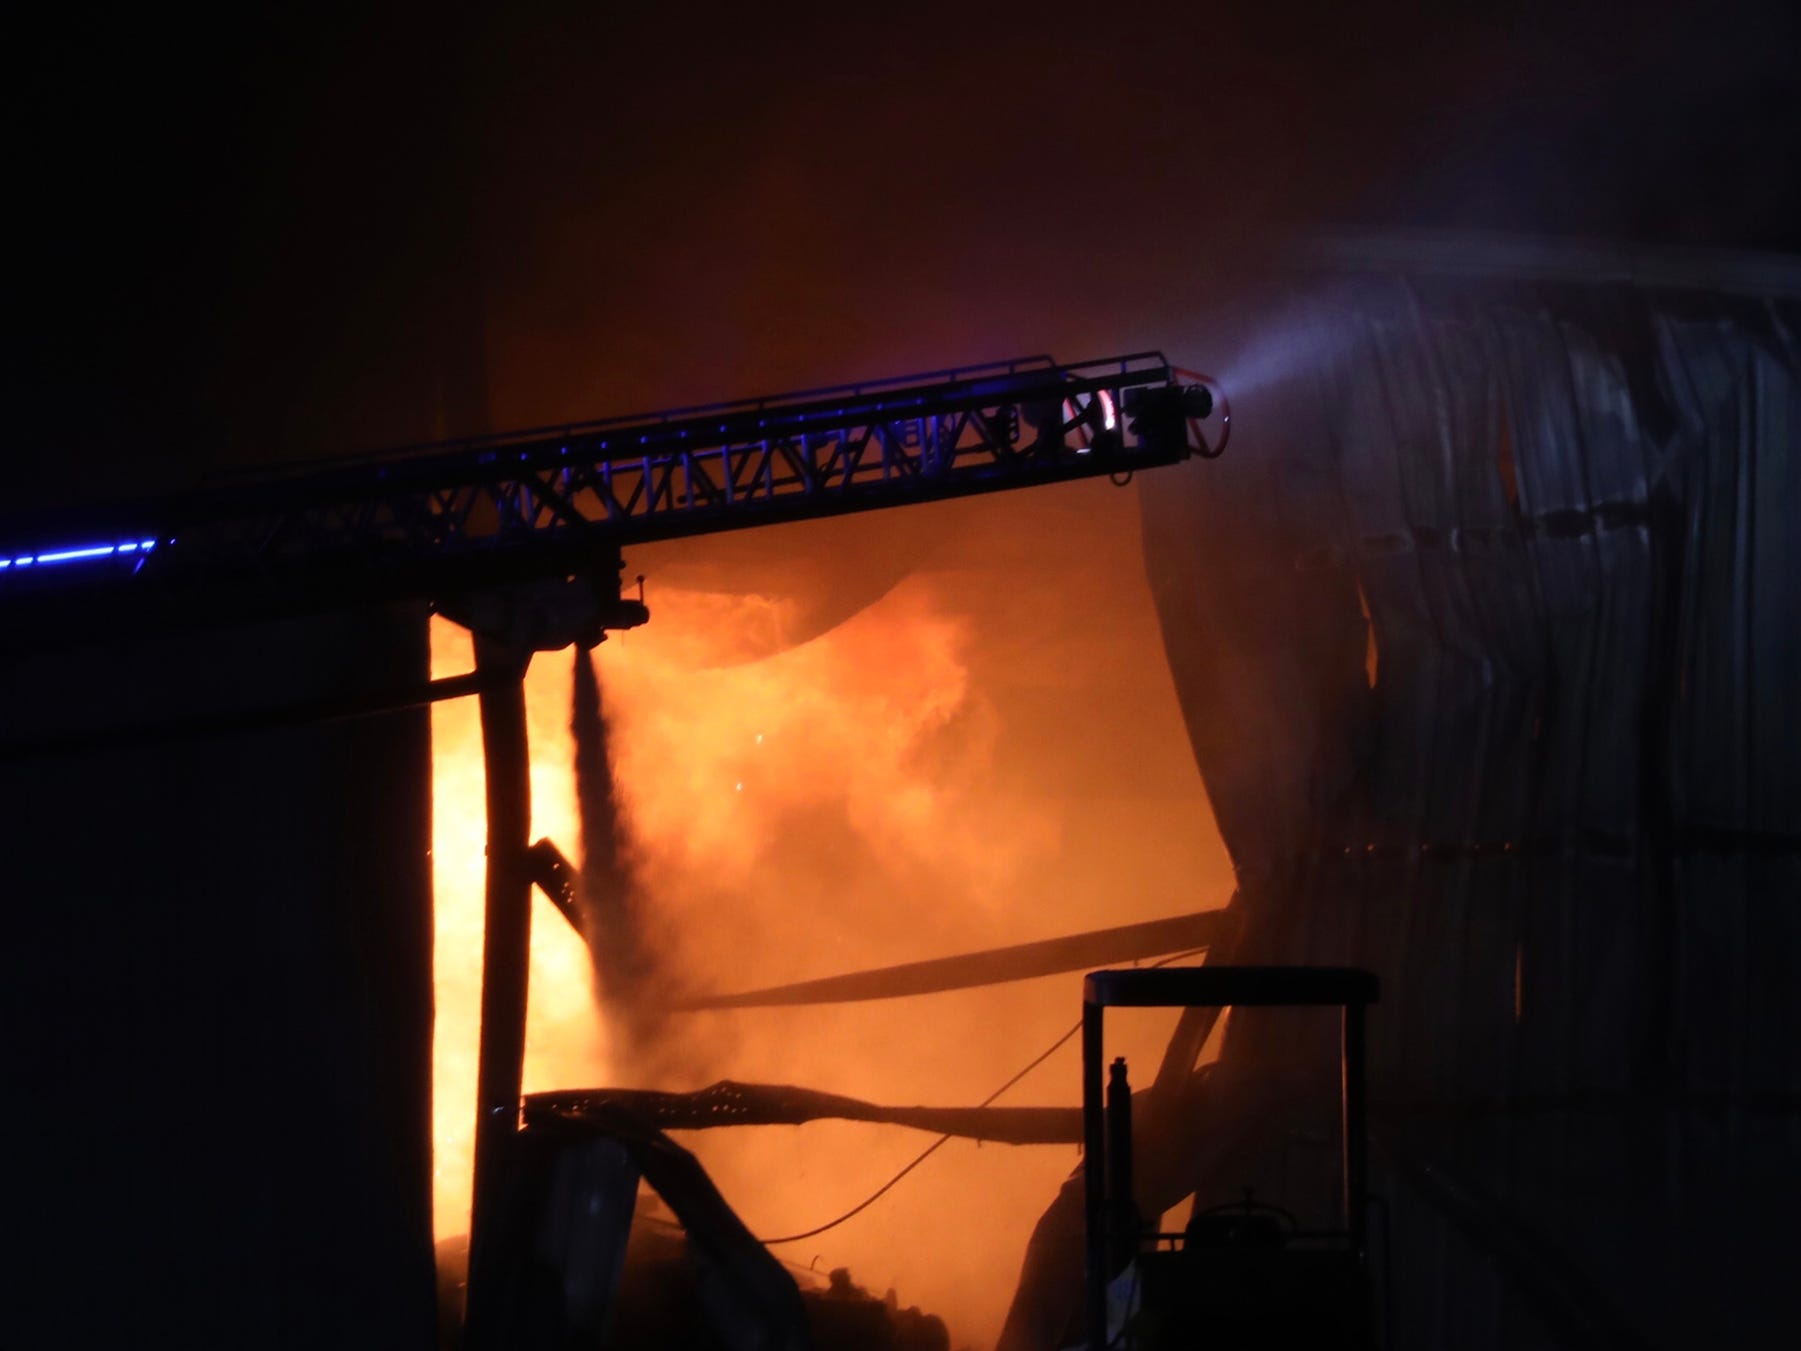 Waves of flames could be seen shooting up toward the ceiling of the large structure.